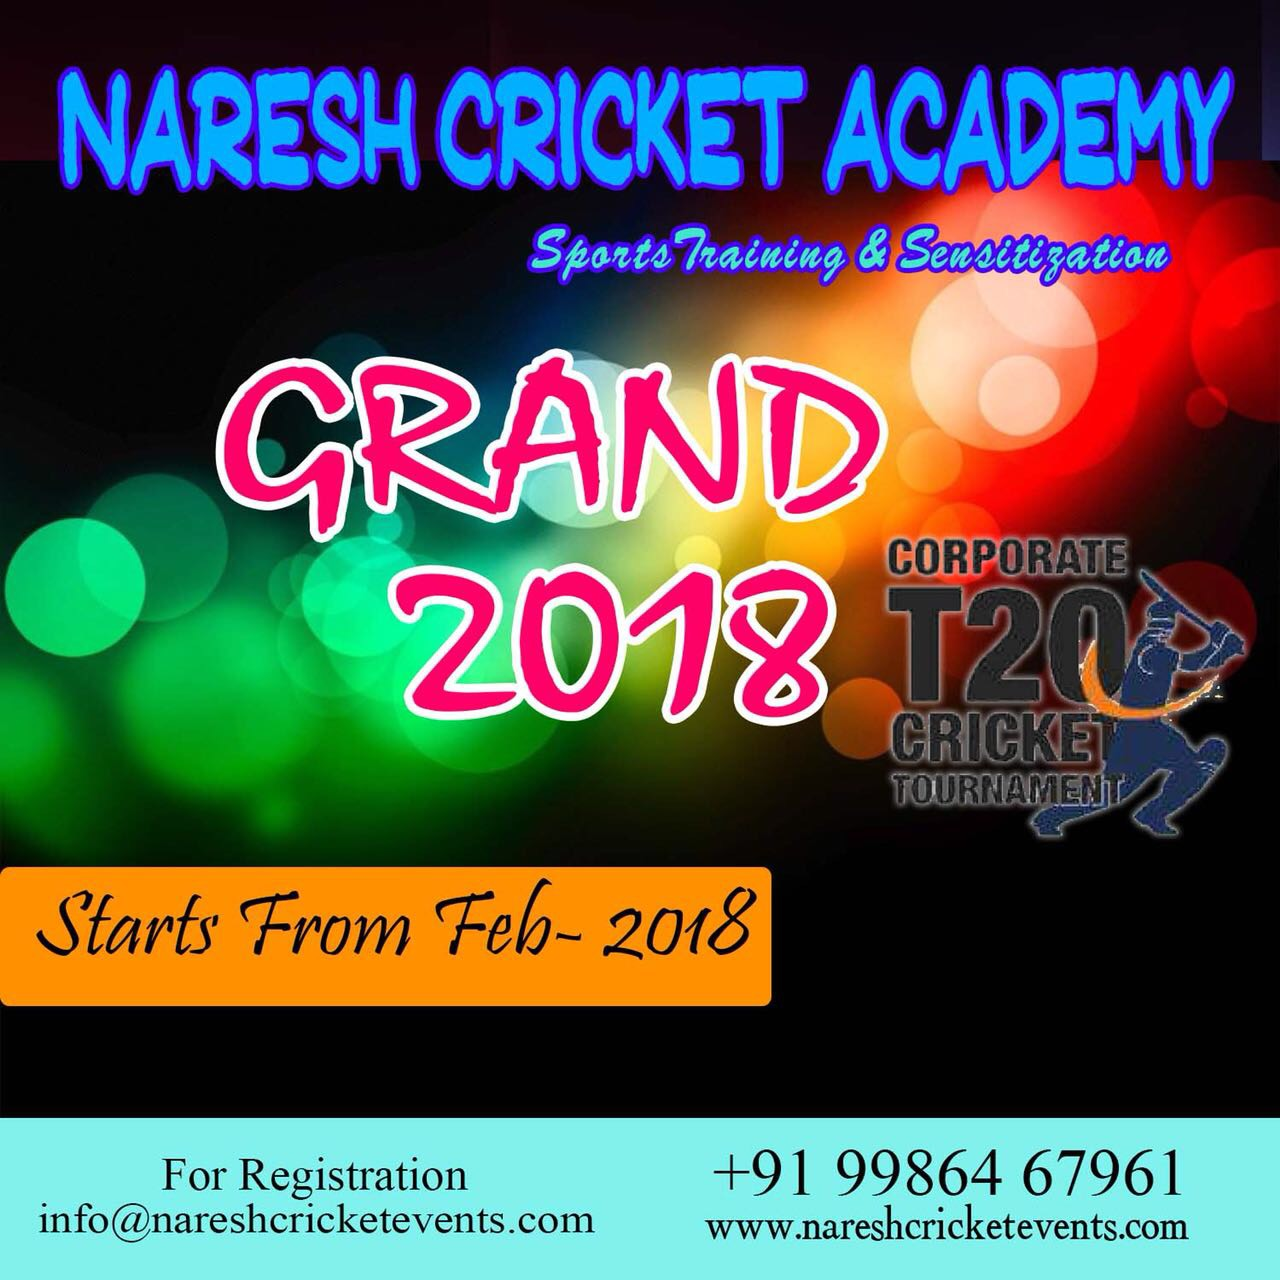 Grand 2018- Corporate Cricket Tournament